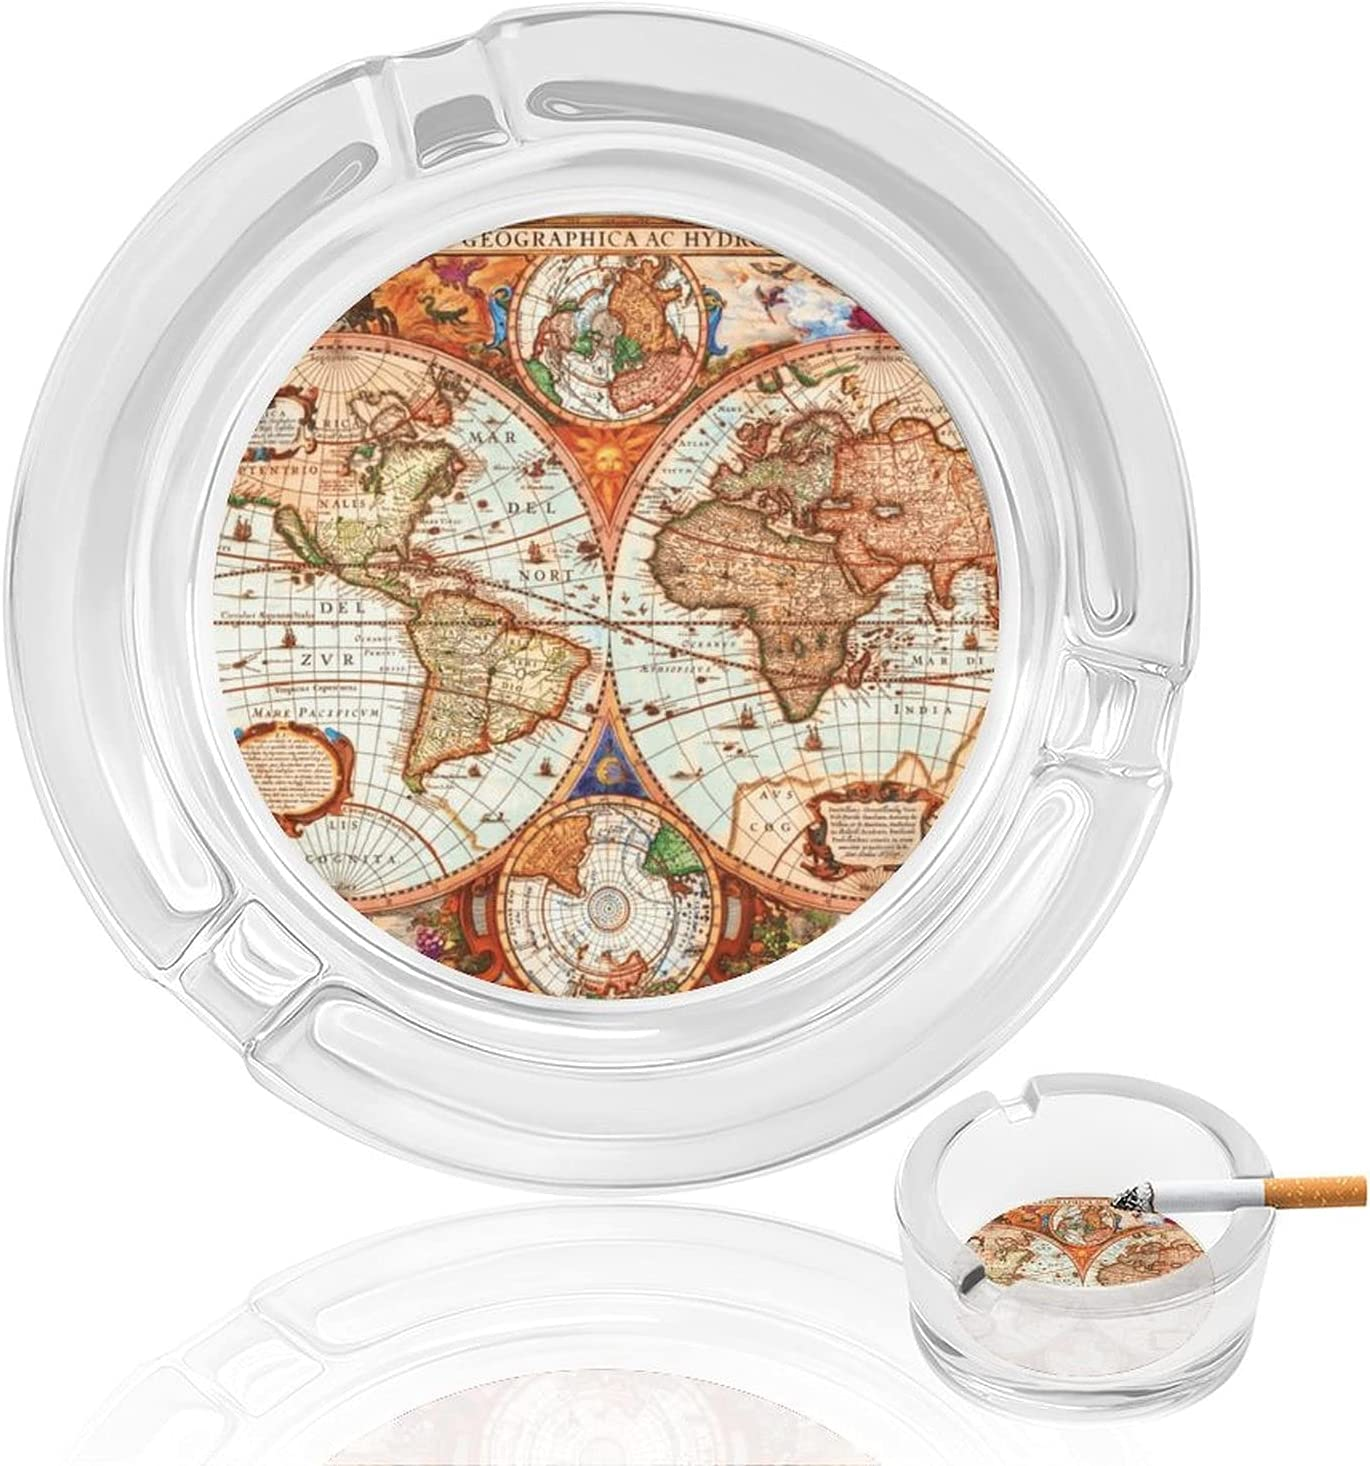 All items in the store Cigar Ashtray Historical World Map ...